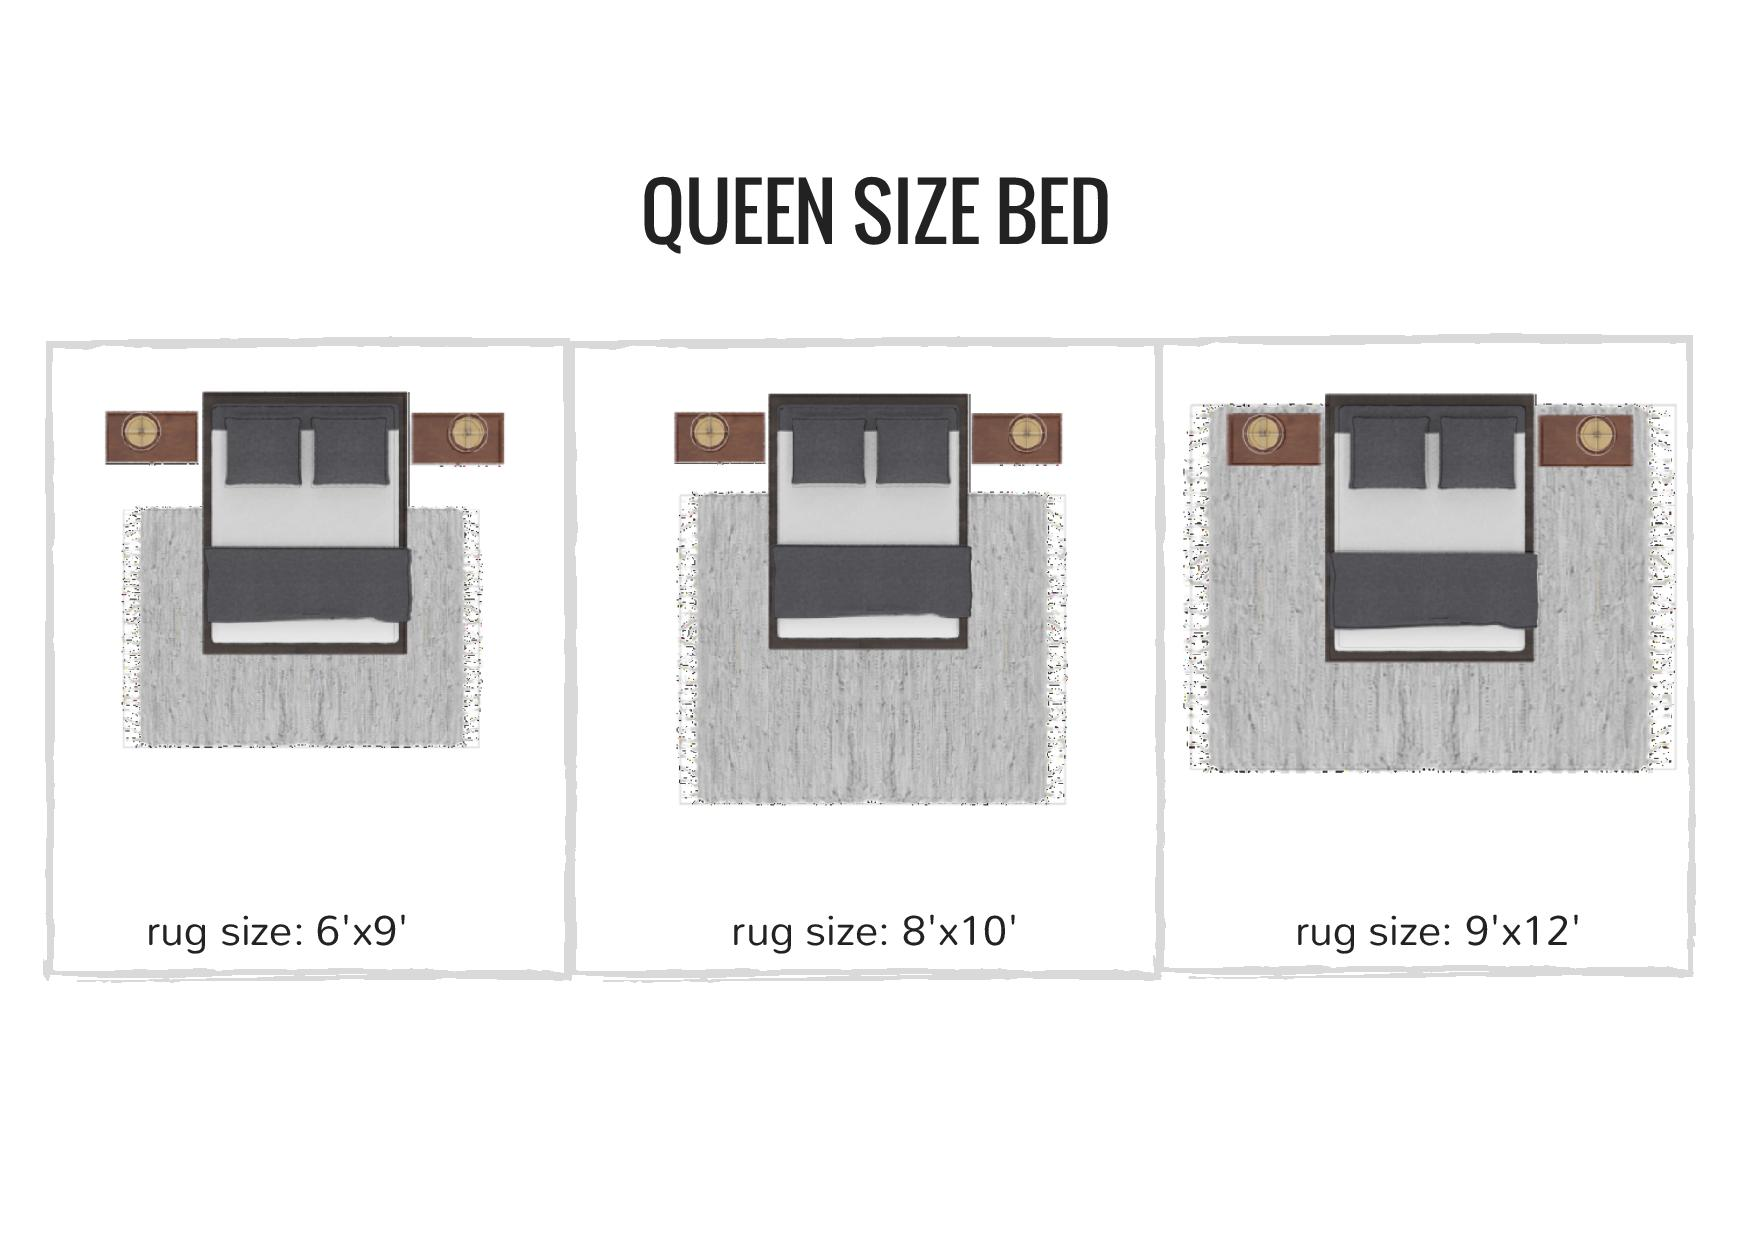 rug sizing and placement guide - what size rug do you need for your queen size bed / bedroom